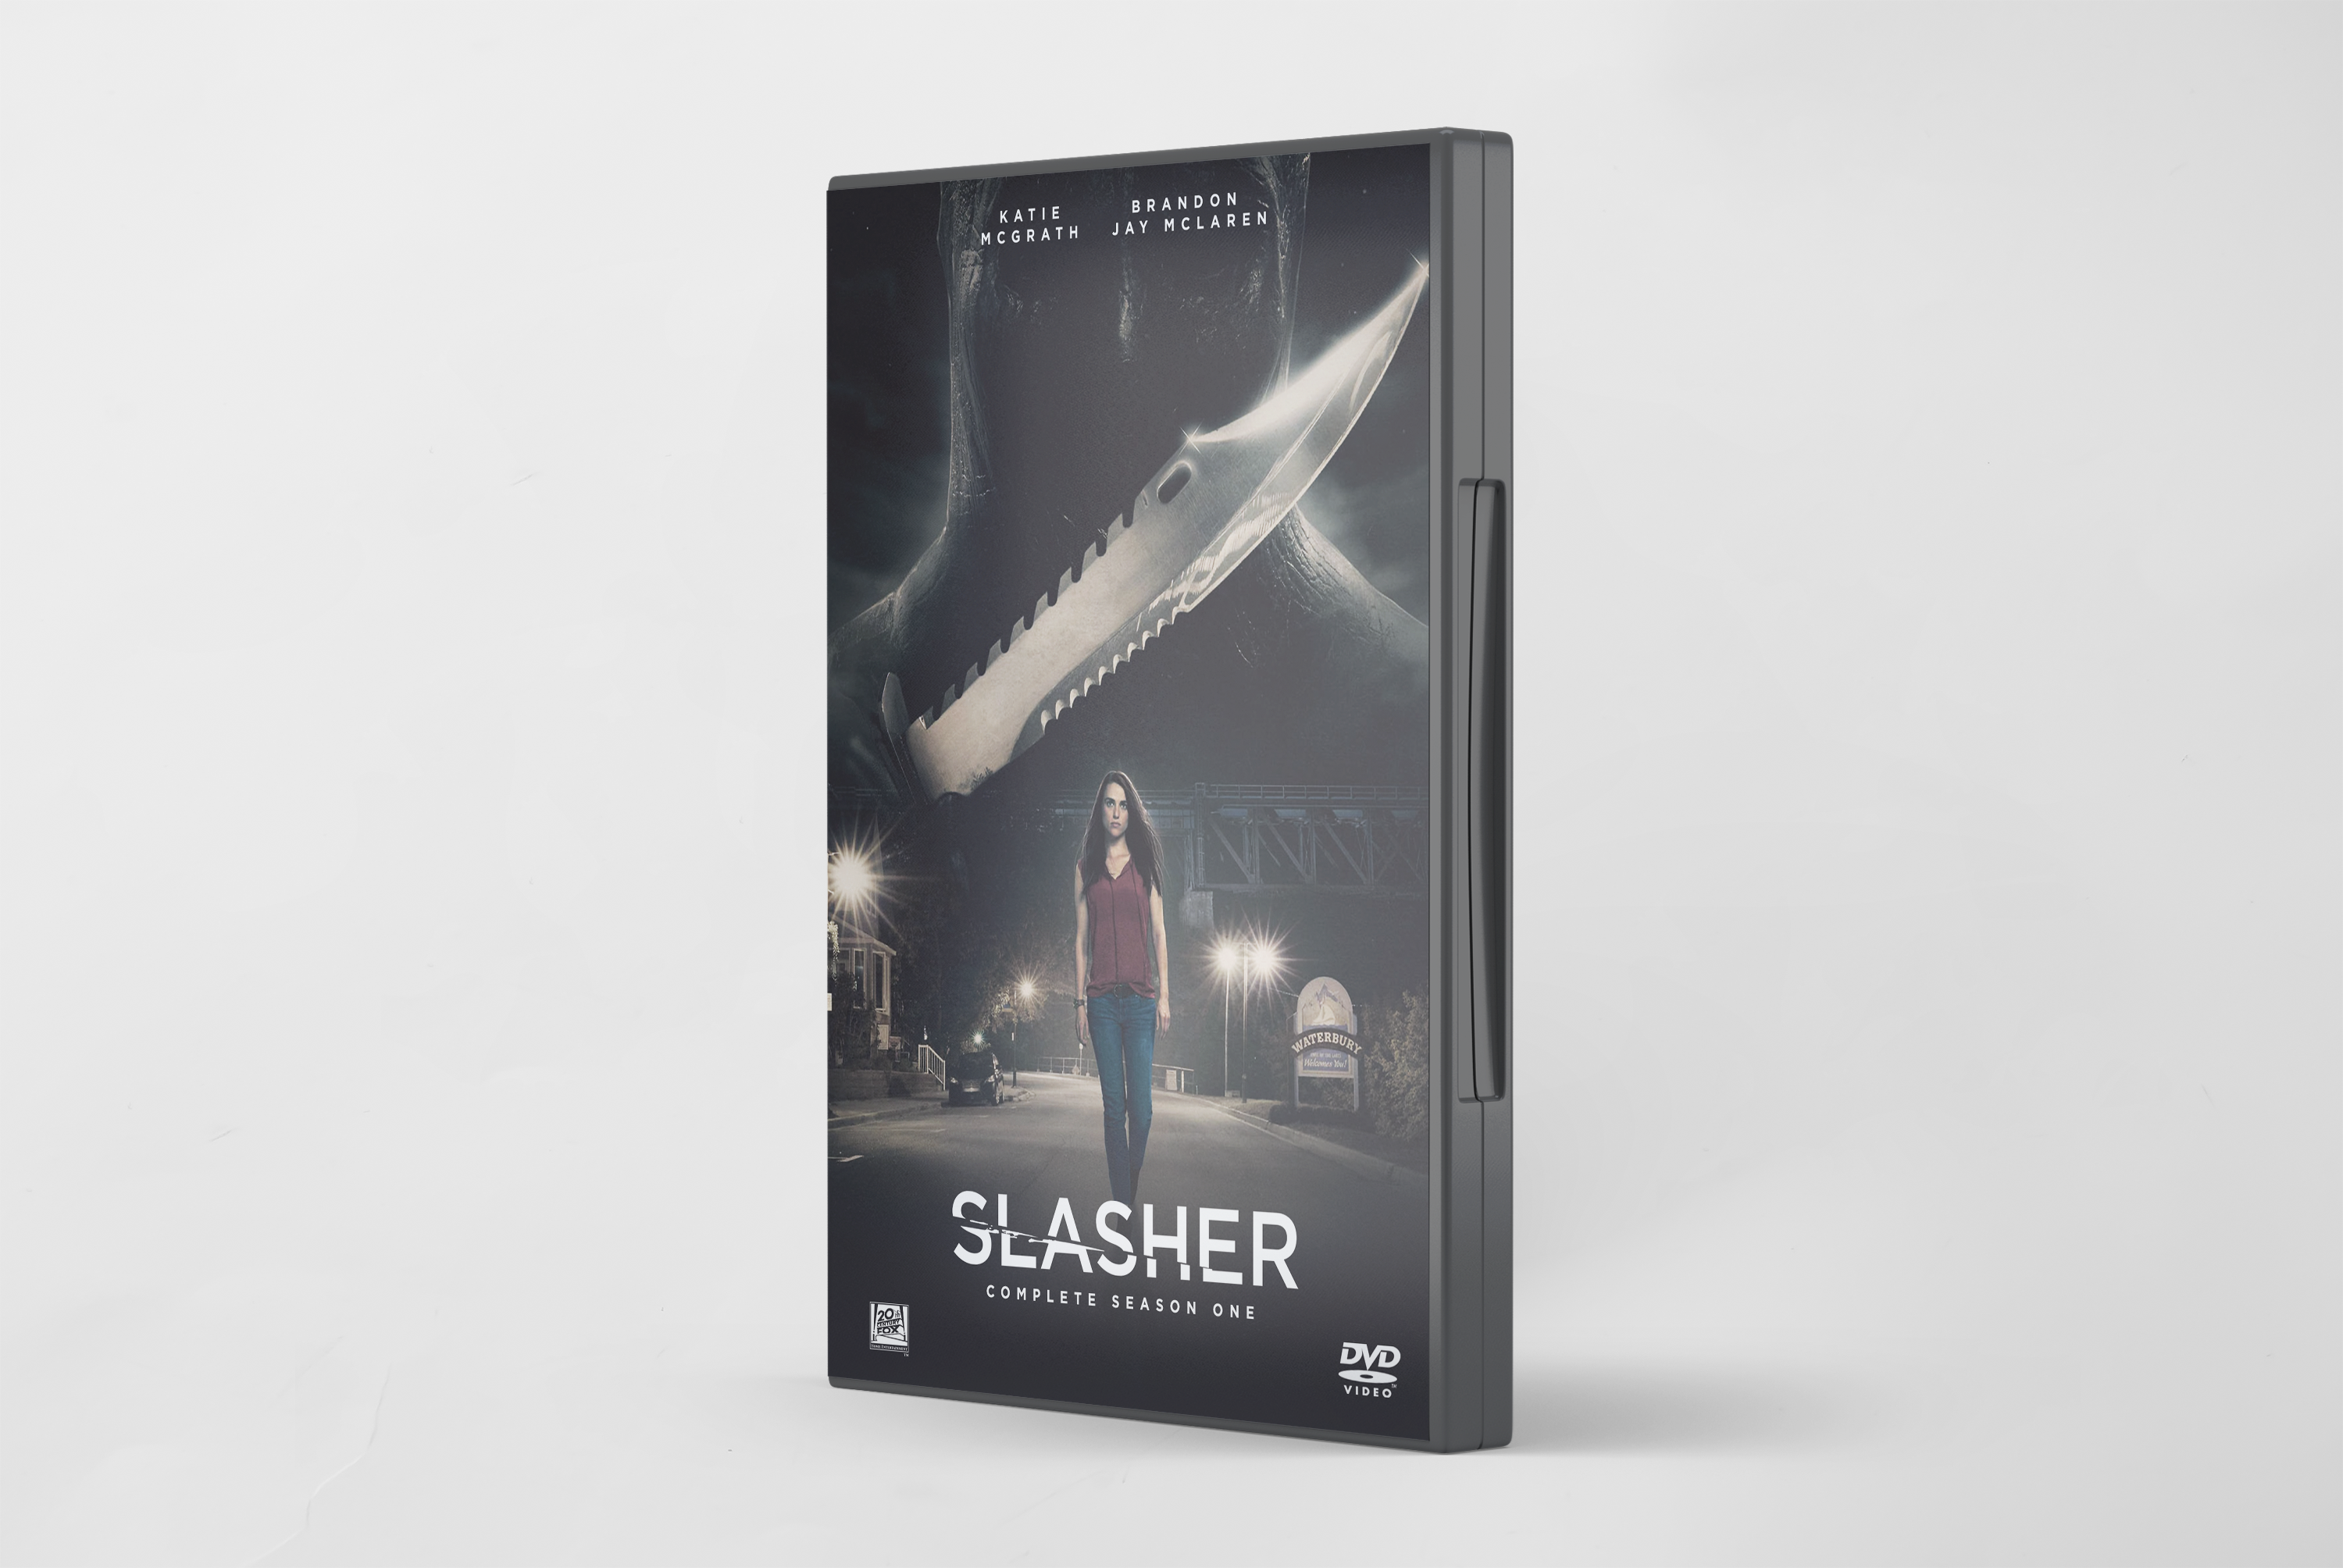 Slasher tv series